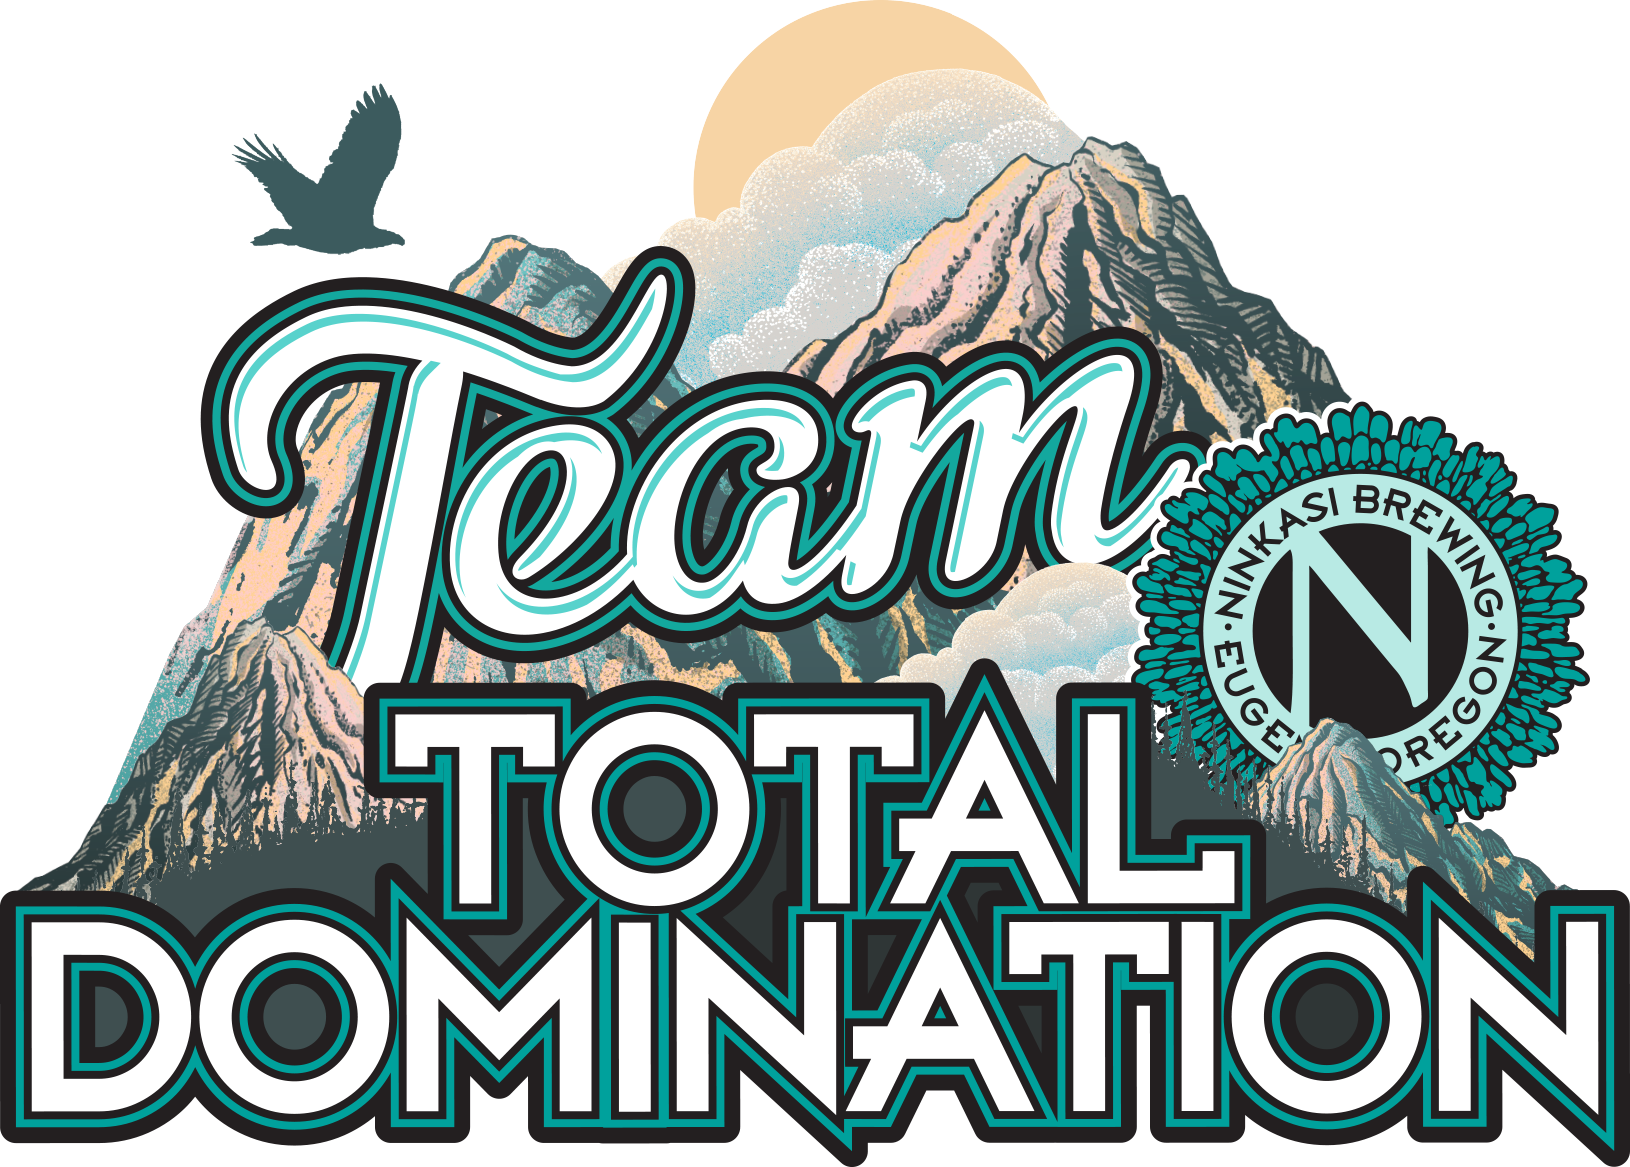 Ninkasi Brewing Company Announces Team Total Domination